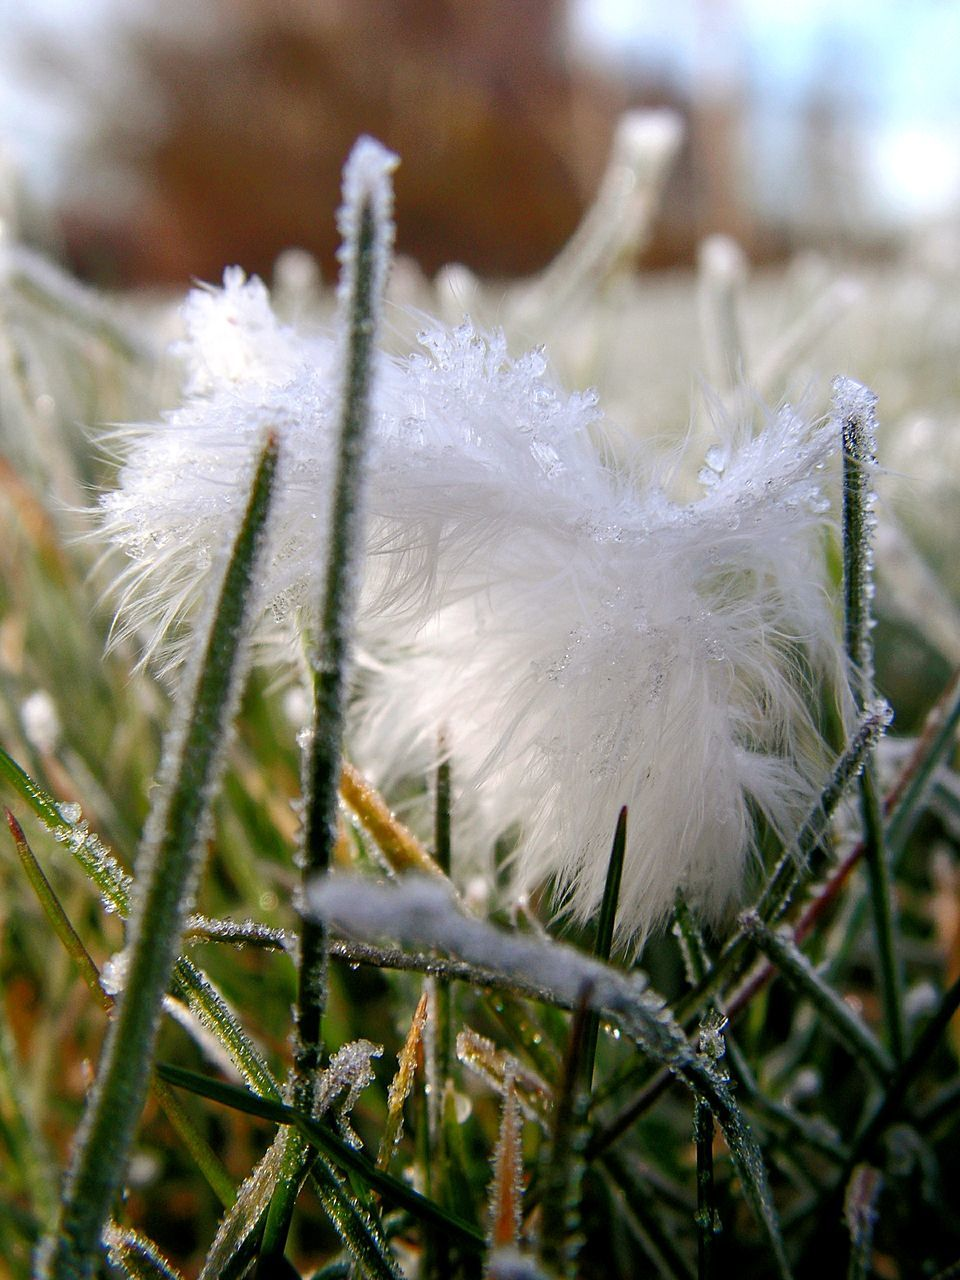 white color, close-up, nature, softness, fragility, growth, focus on foreground, flower, day, no people, beauty in nature, plant, outdoors, grass, winter, flower head